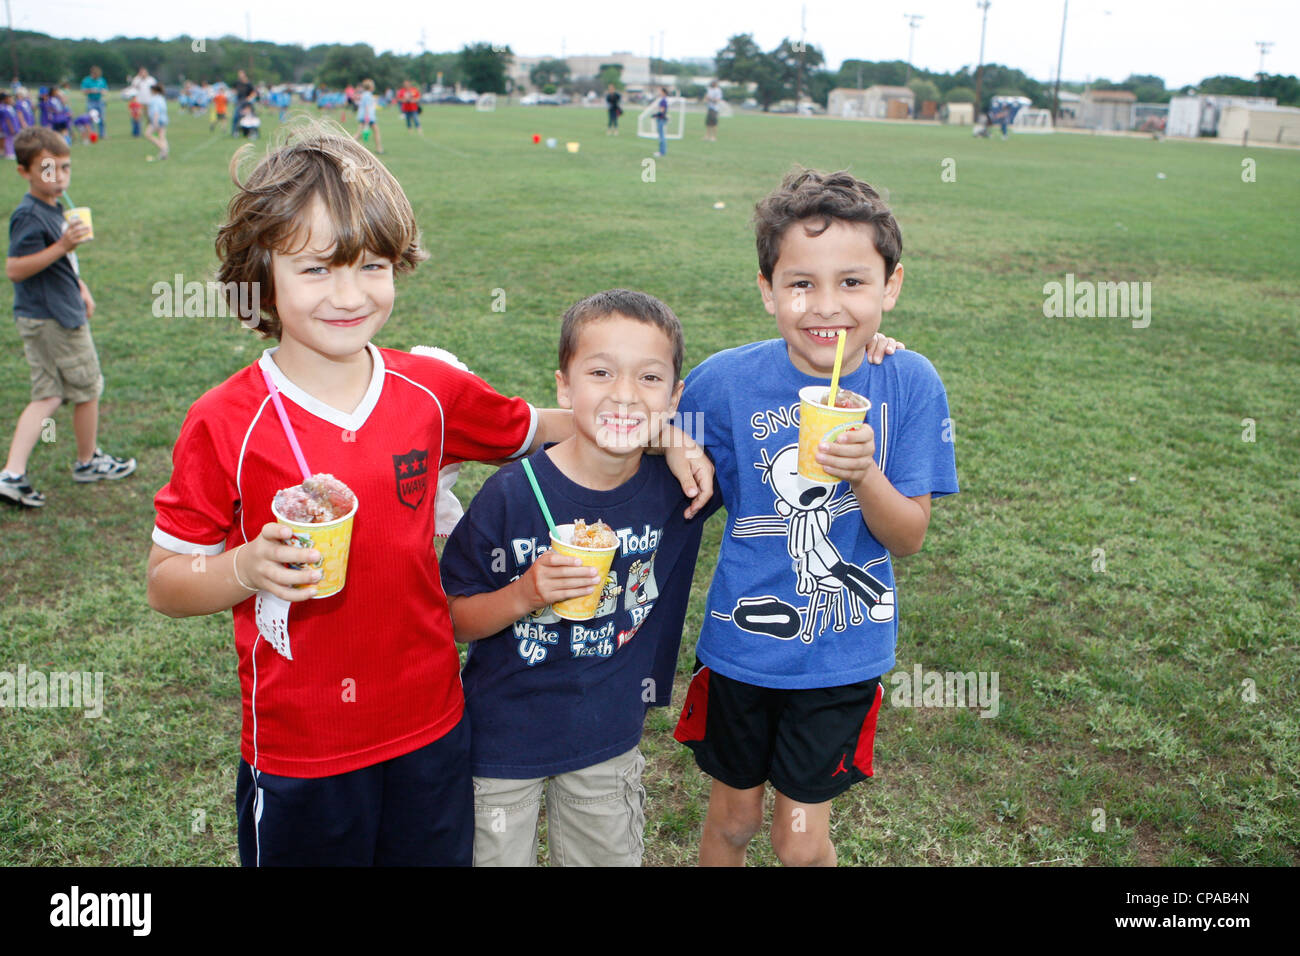 Second grade classmates, show difference in height, while enjoying snow-cones during outdoor activities at elementary - Stock Image